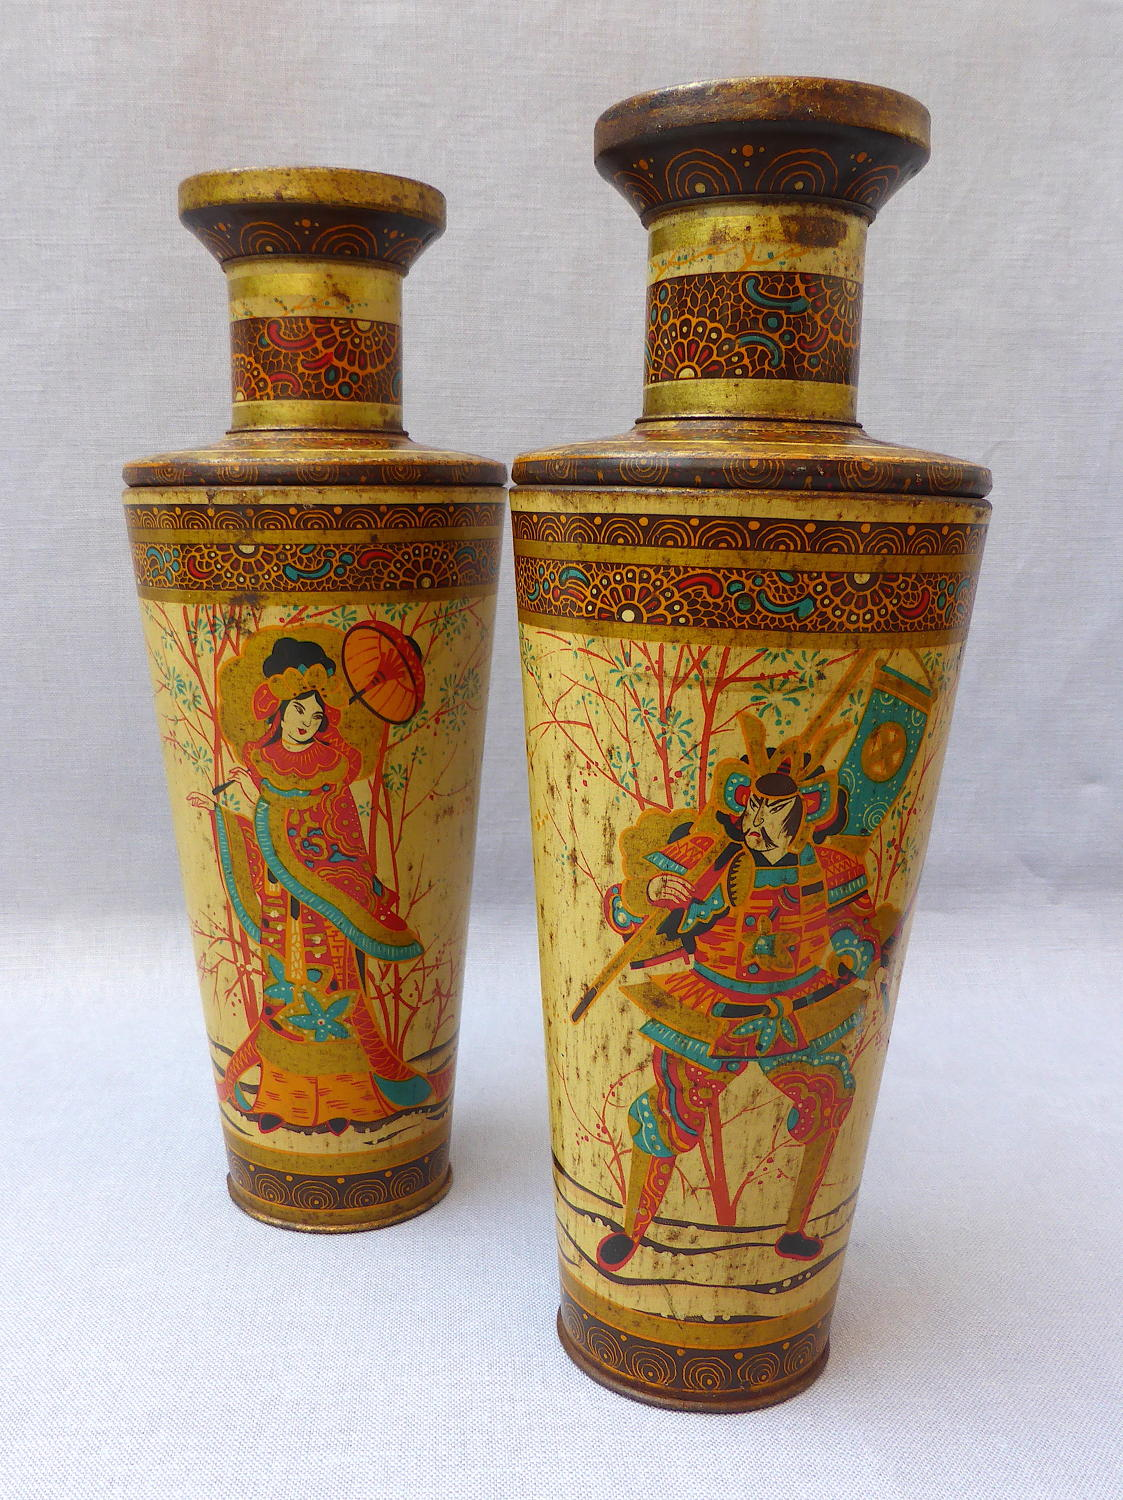 Pair oriental vase toleware biscuit tins early 20th century